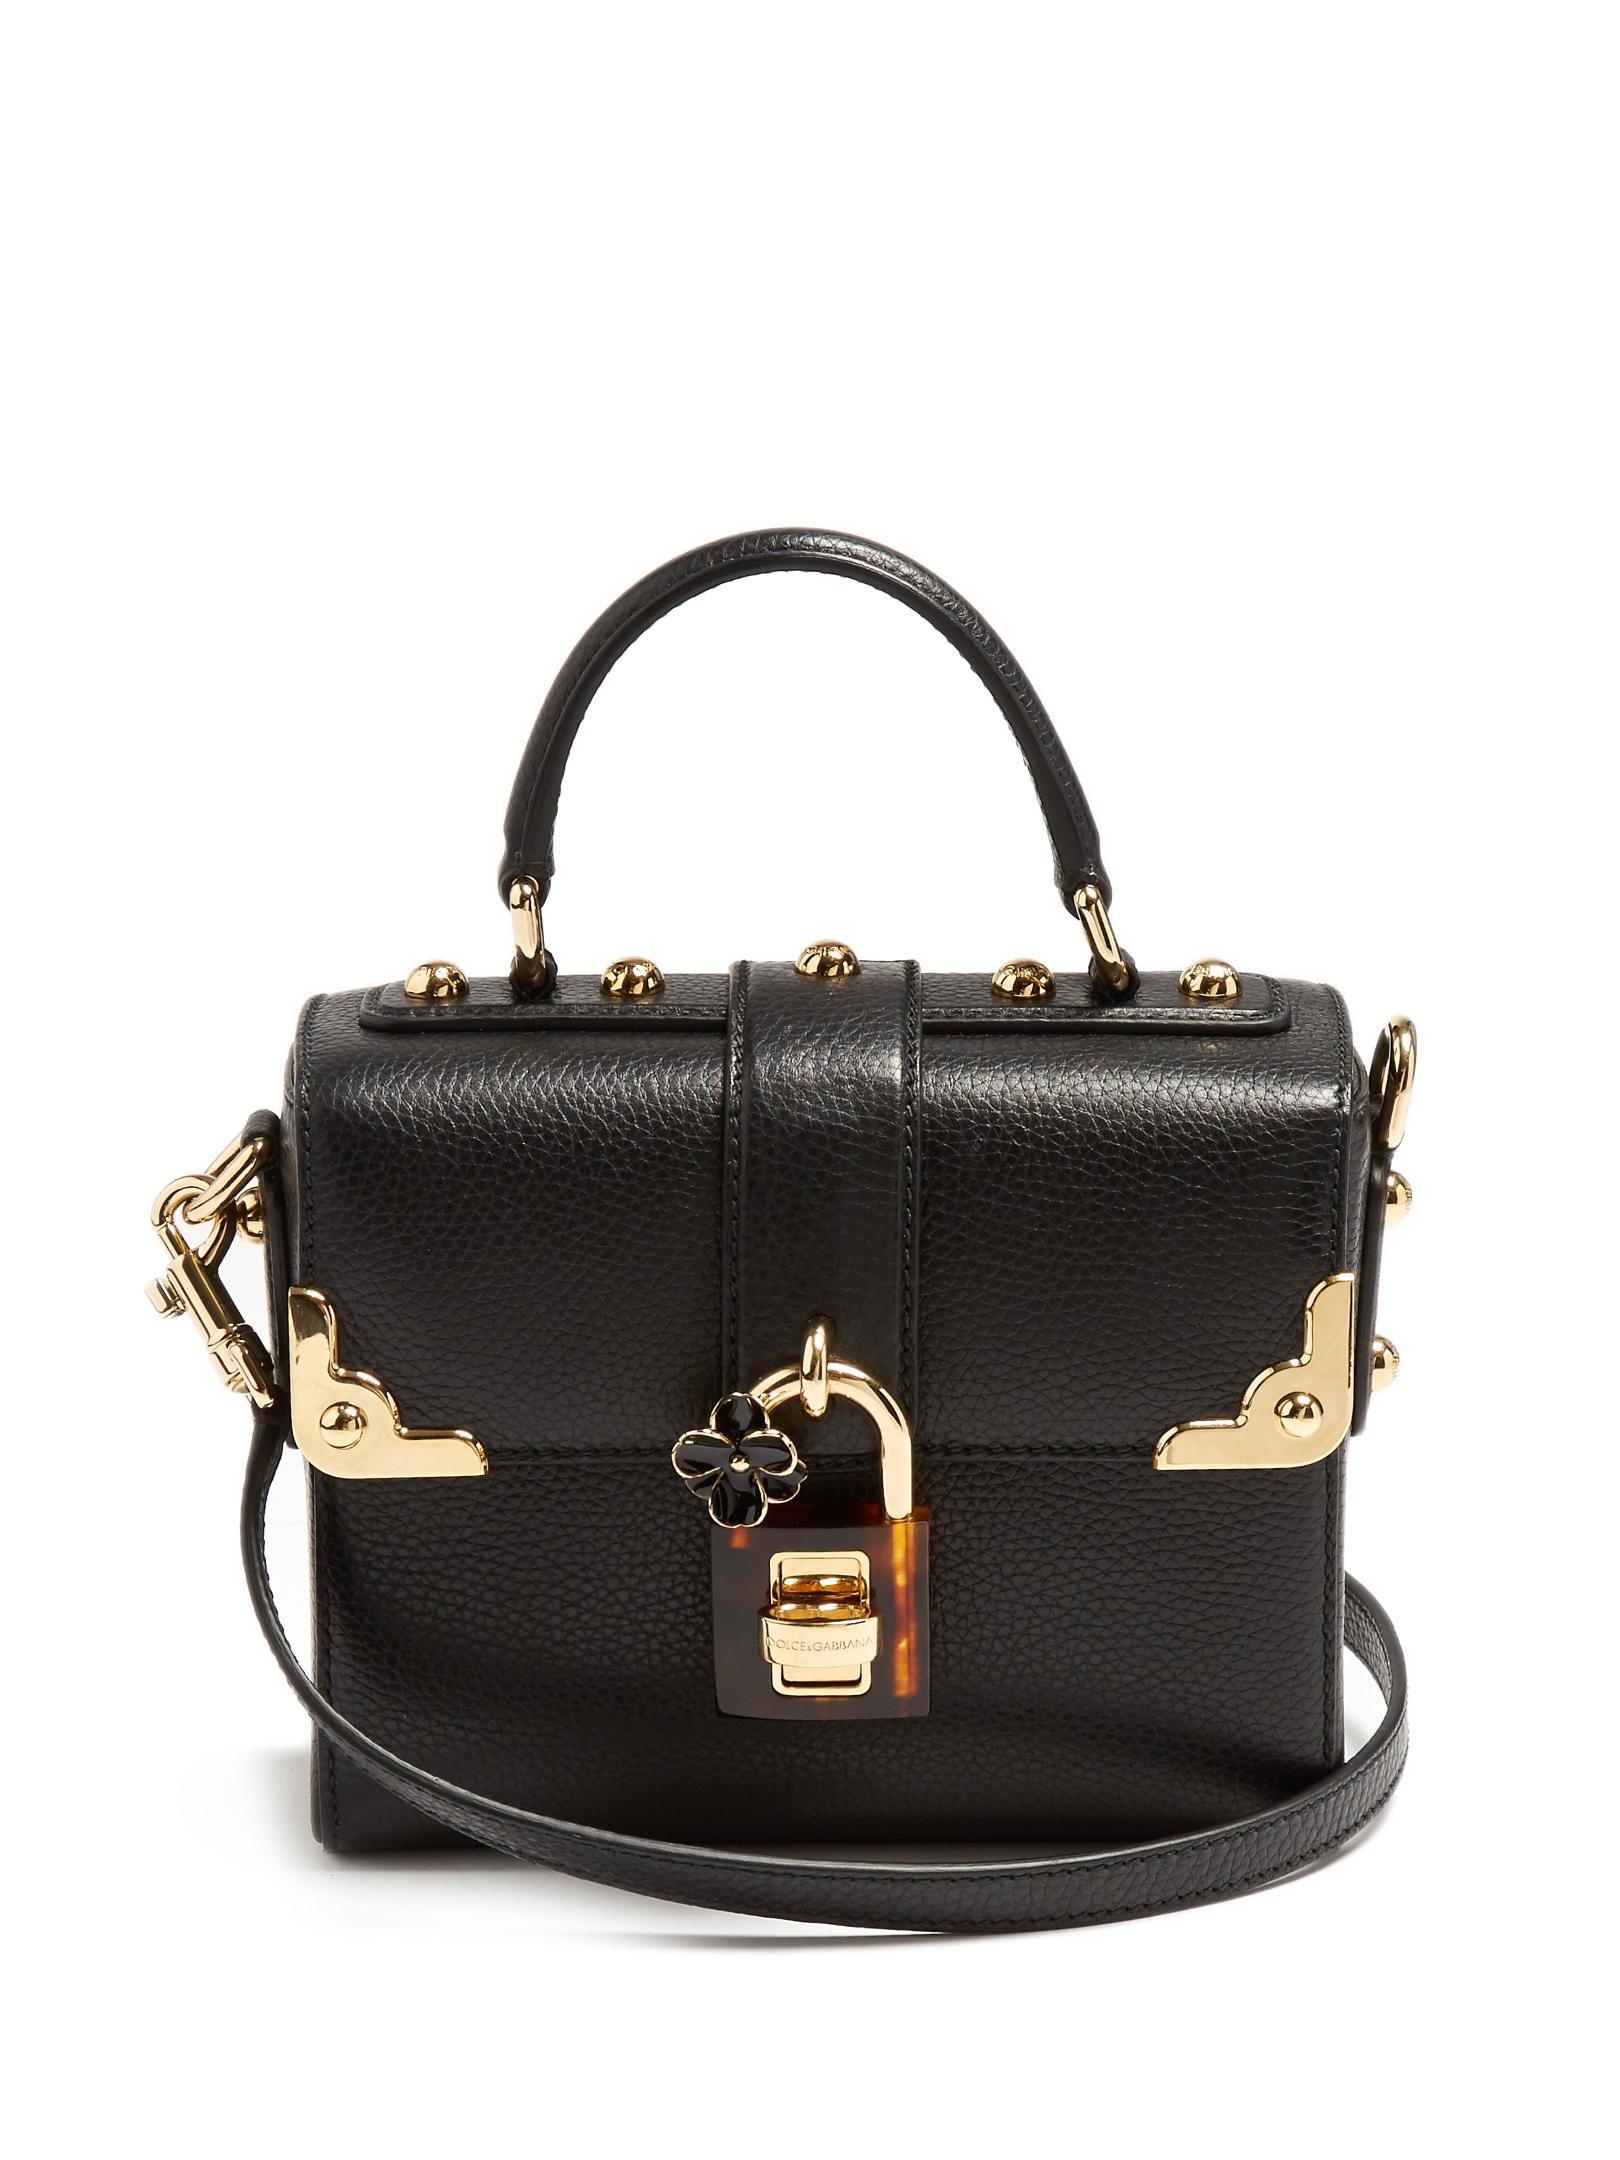 e104d853b0 Lyst - Dolce   gabbana Dolce Soft Grained-leather Bag in Black